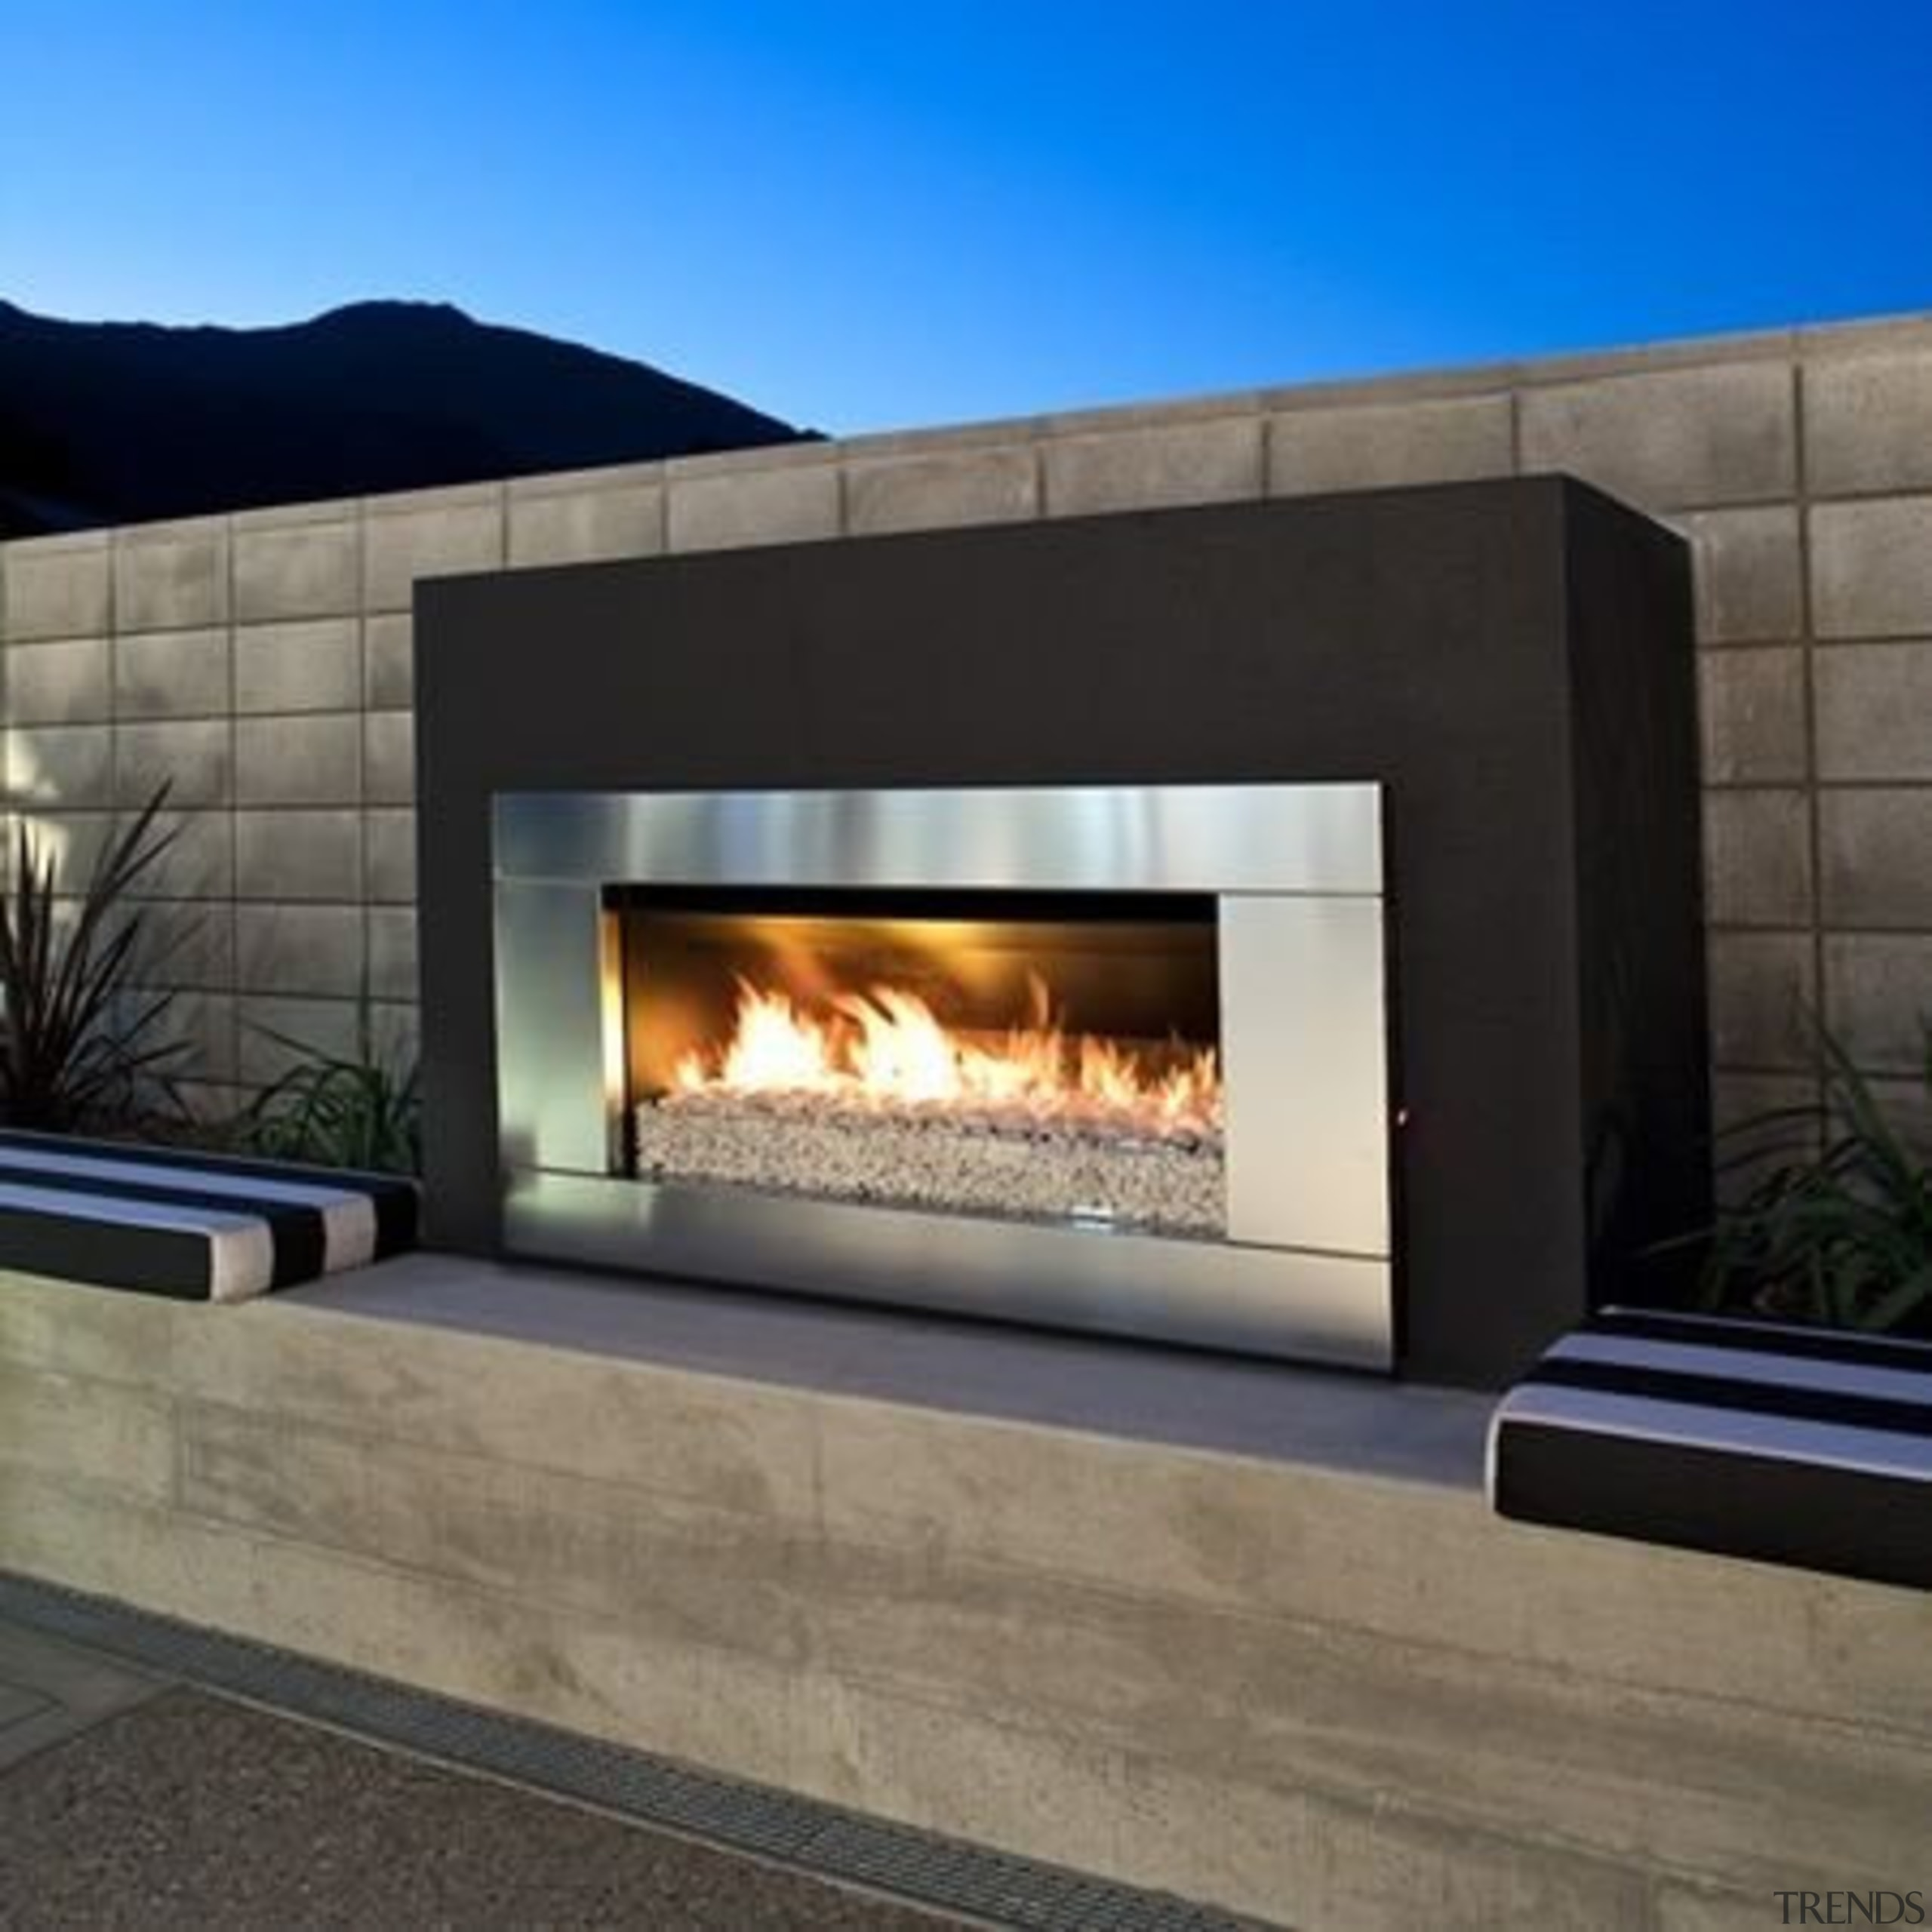 View Our Range of Gas, Wood and fireplace, hearth, heat, gray, black